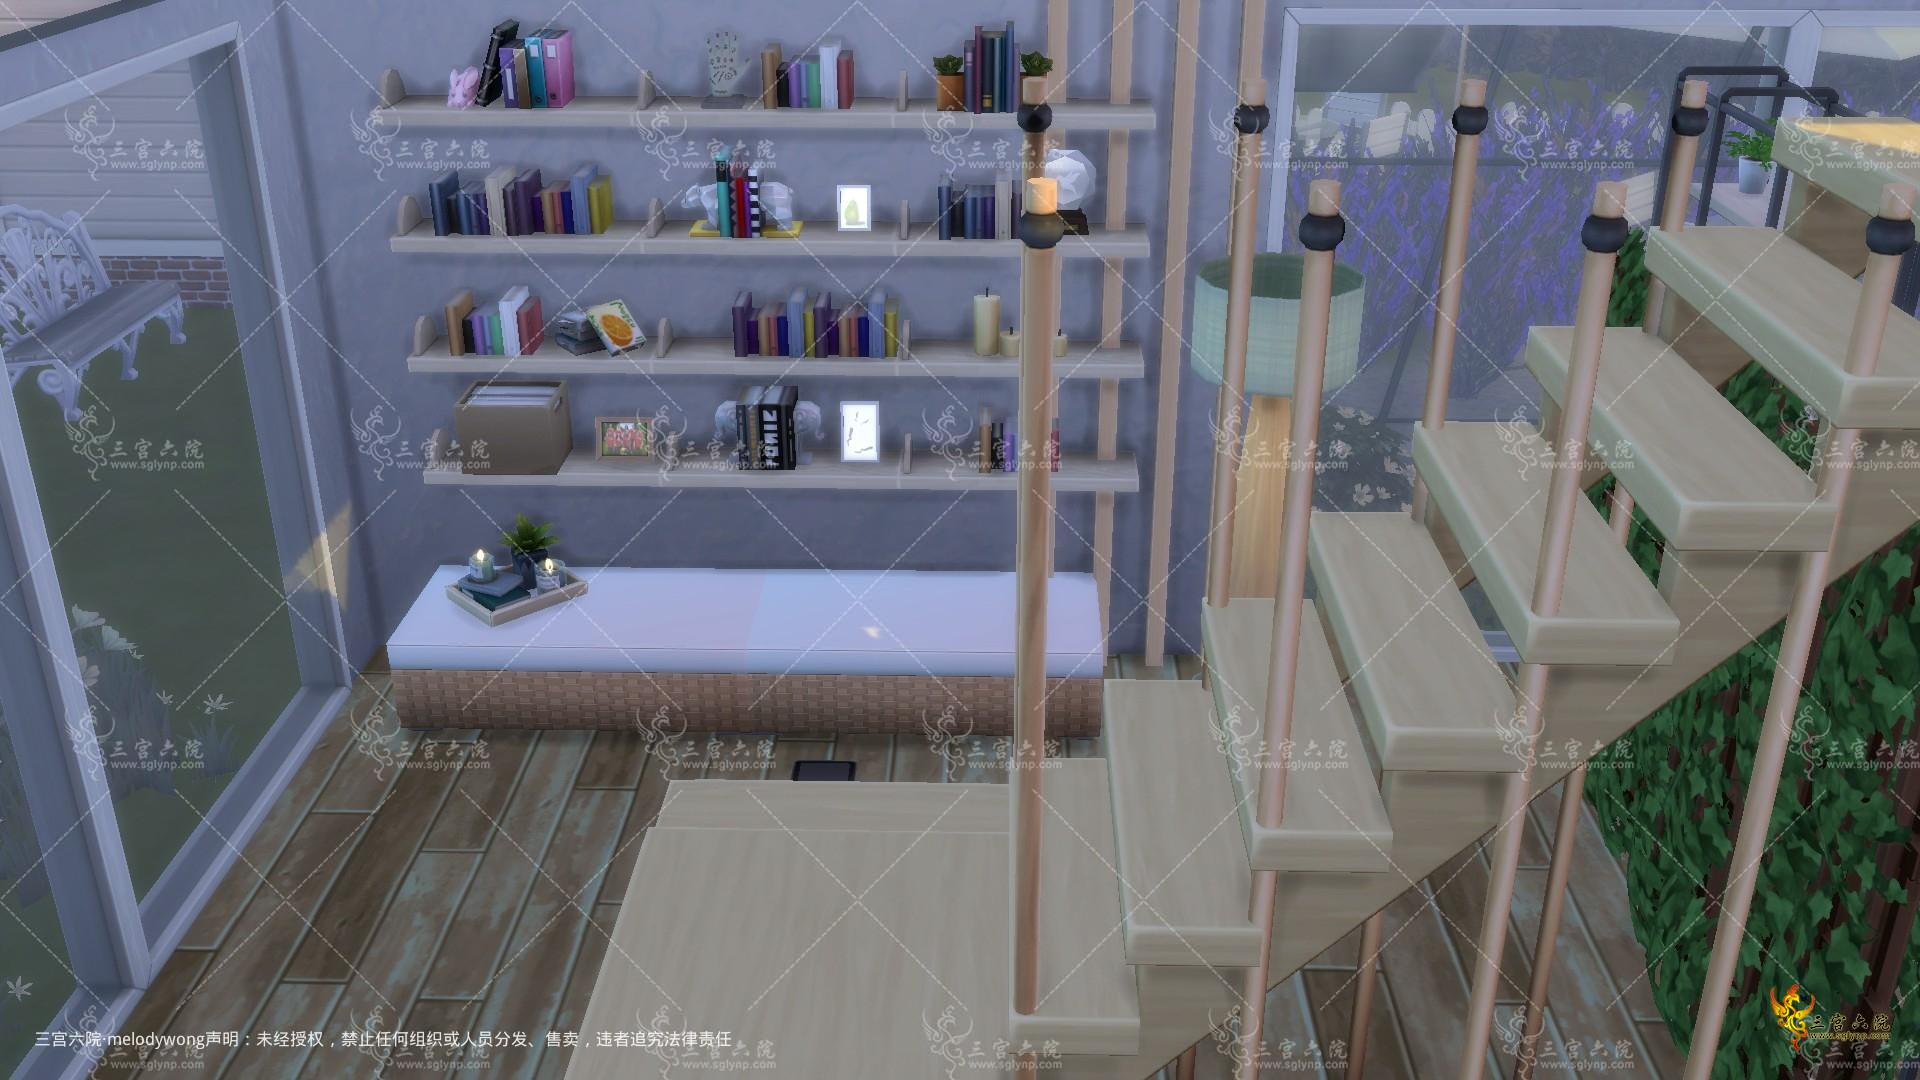 The Sims 4 2021_8_26 下午 03_12_26.png